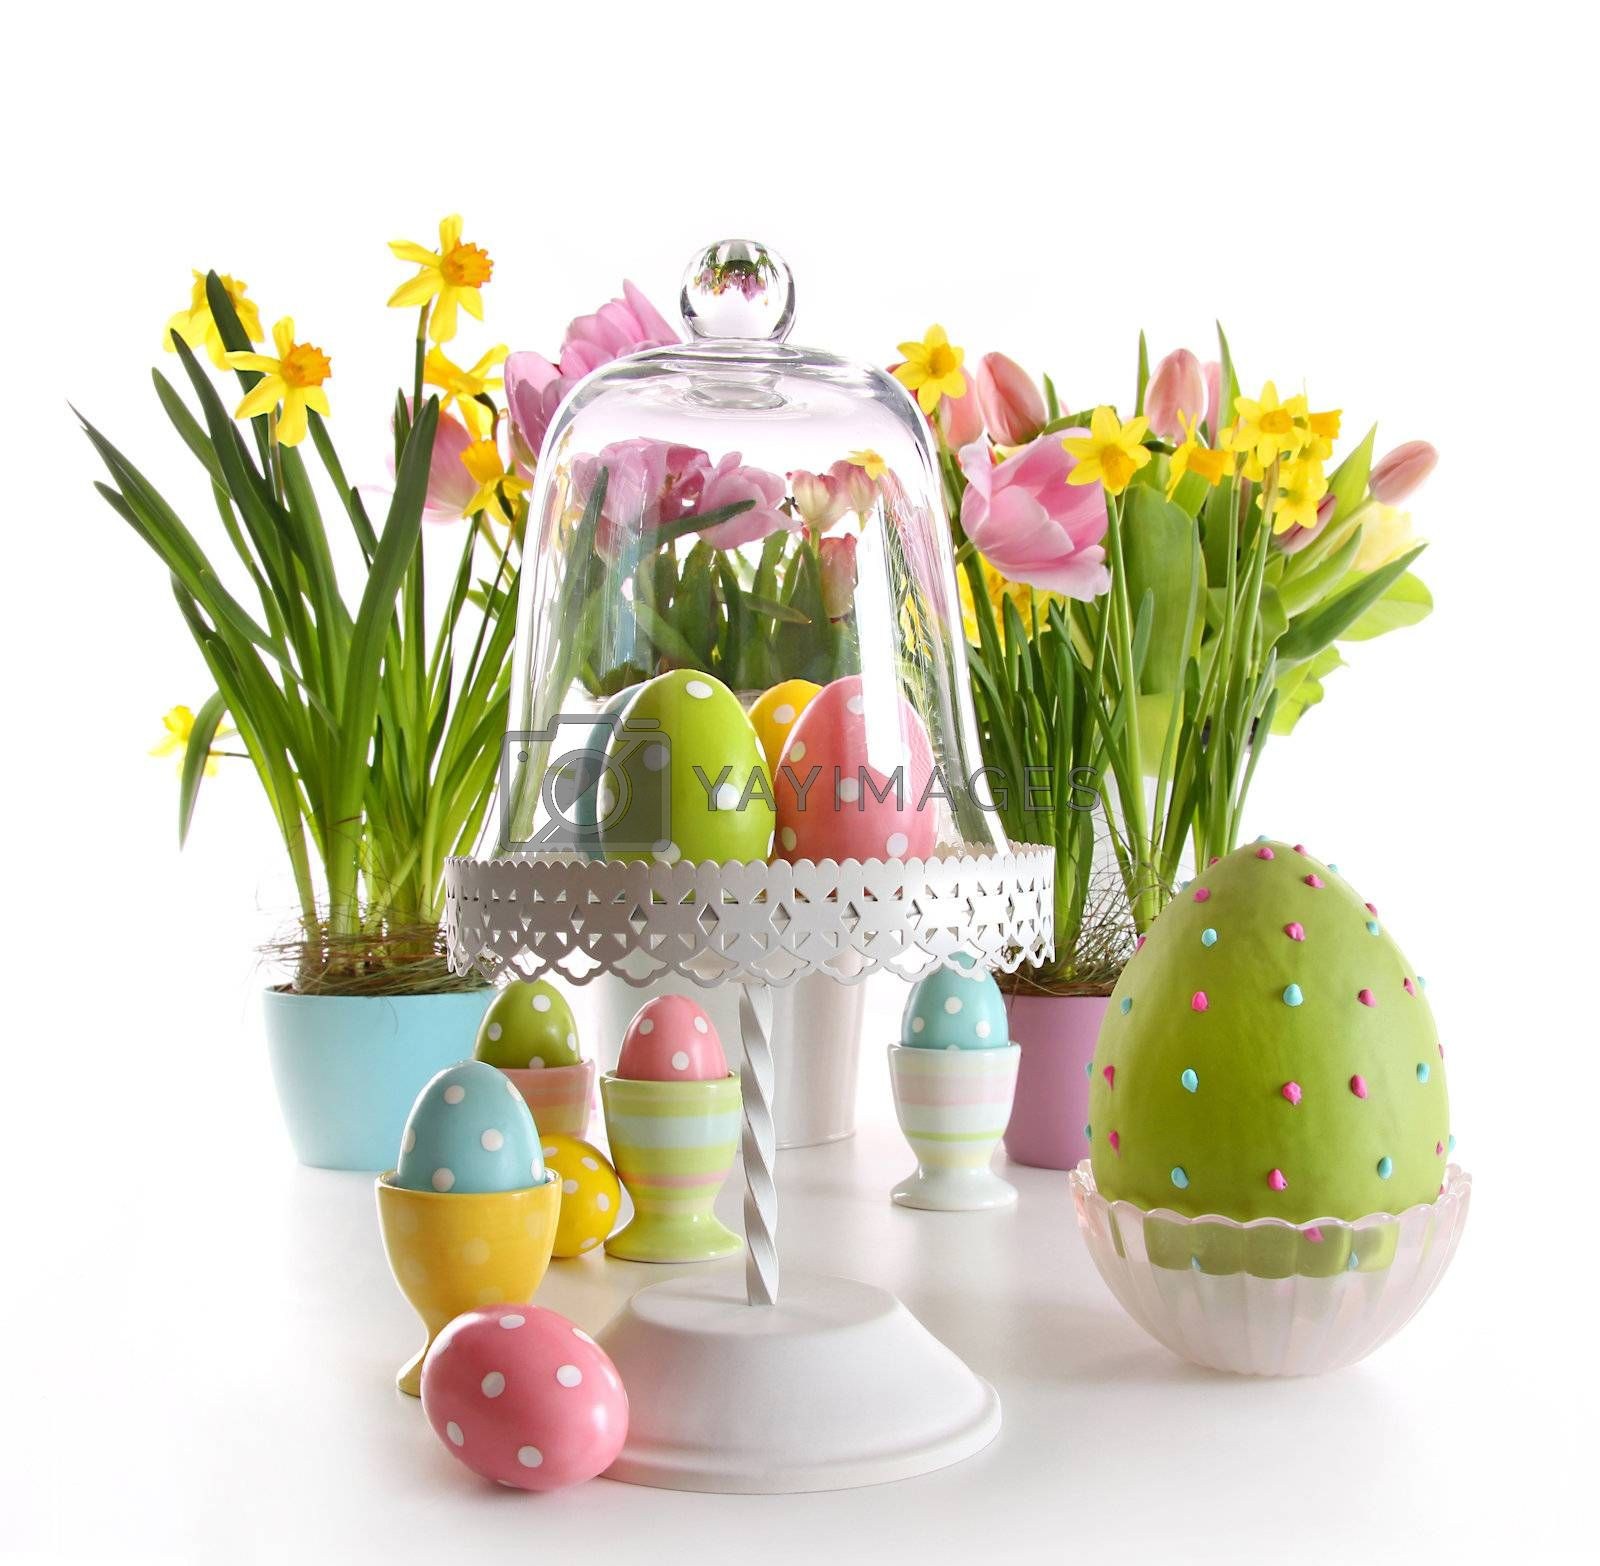 Easter eggs on cake stand with spring flowers on white